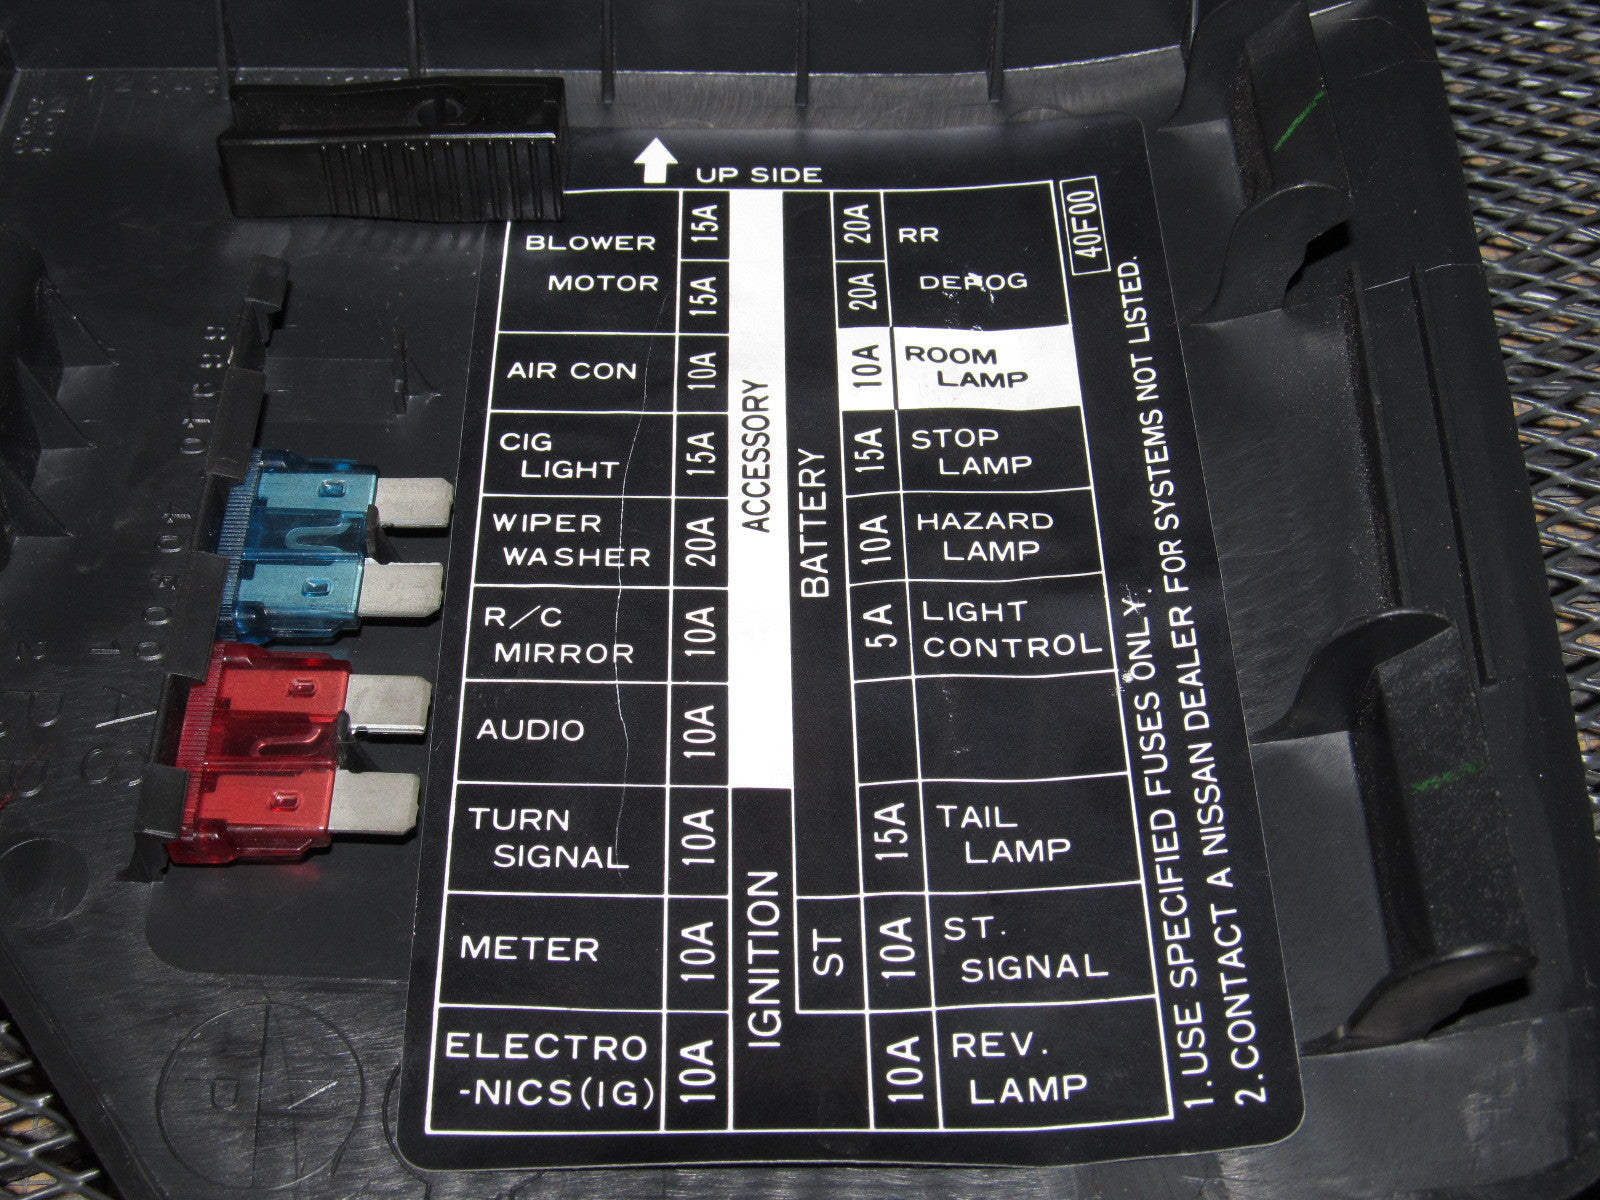 IMG_0241_bc4dfbbf 93f7 4ea2 ba97 c7ba394f9039?v\=1461893093 240sx fuse box 240sx radio fuse \u2022 wiring diagrams j squared co Under Hood Fuse Box Diagram at panicattacktreatment.co